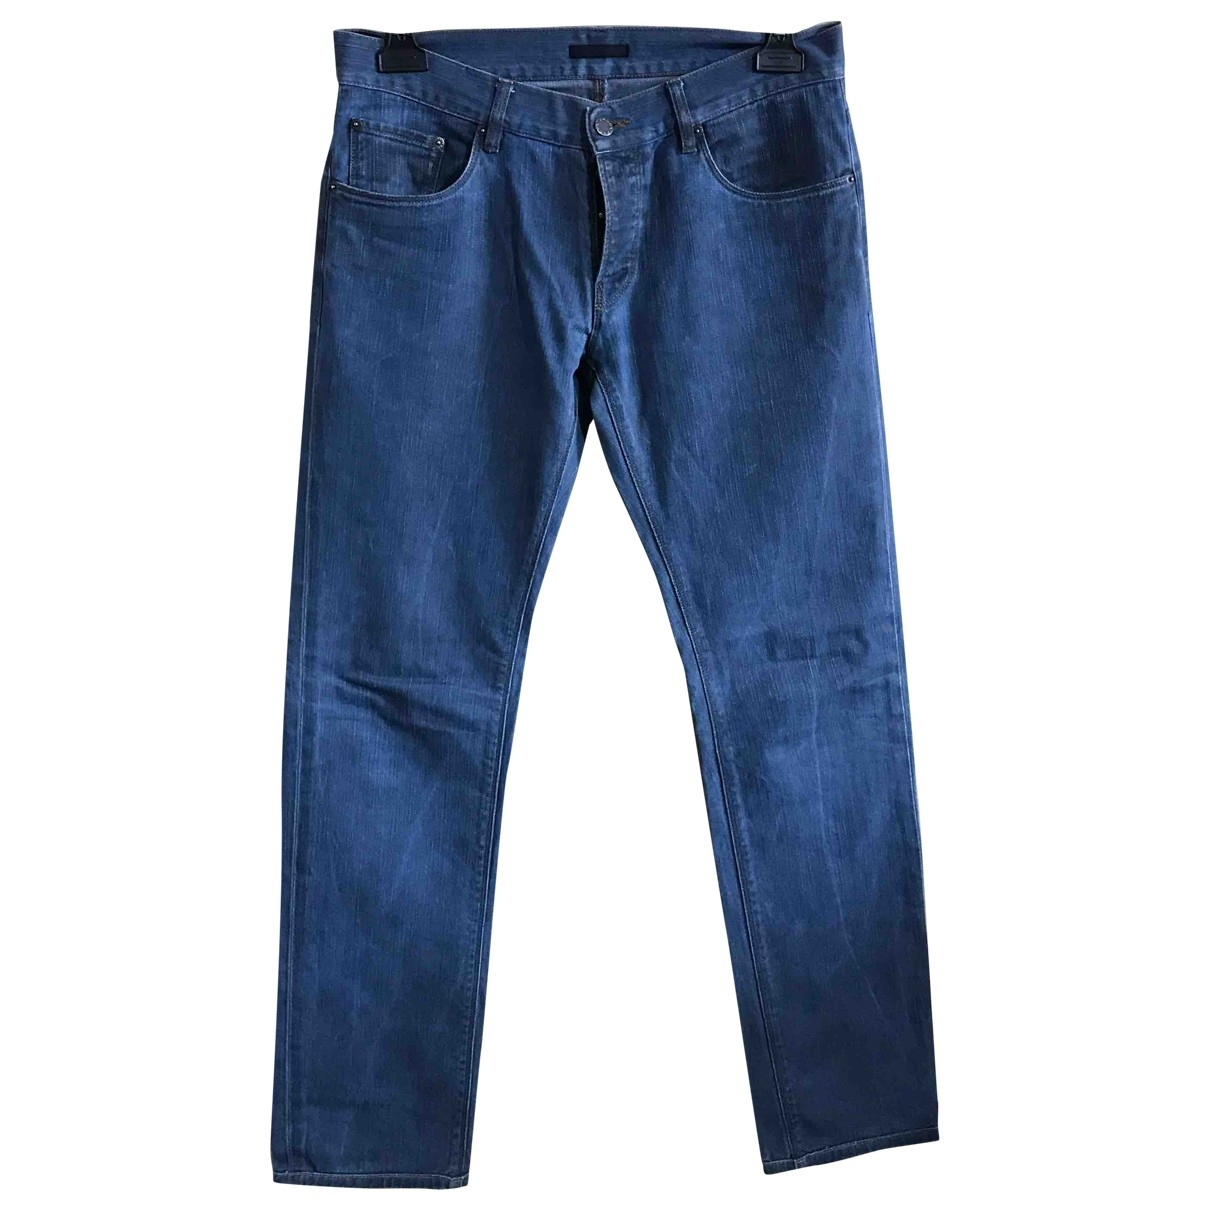 Prada \N Blue Denim - Jeans Trousers for Men 46 IT